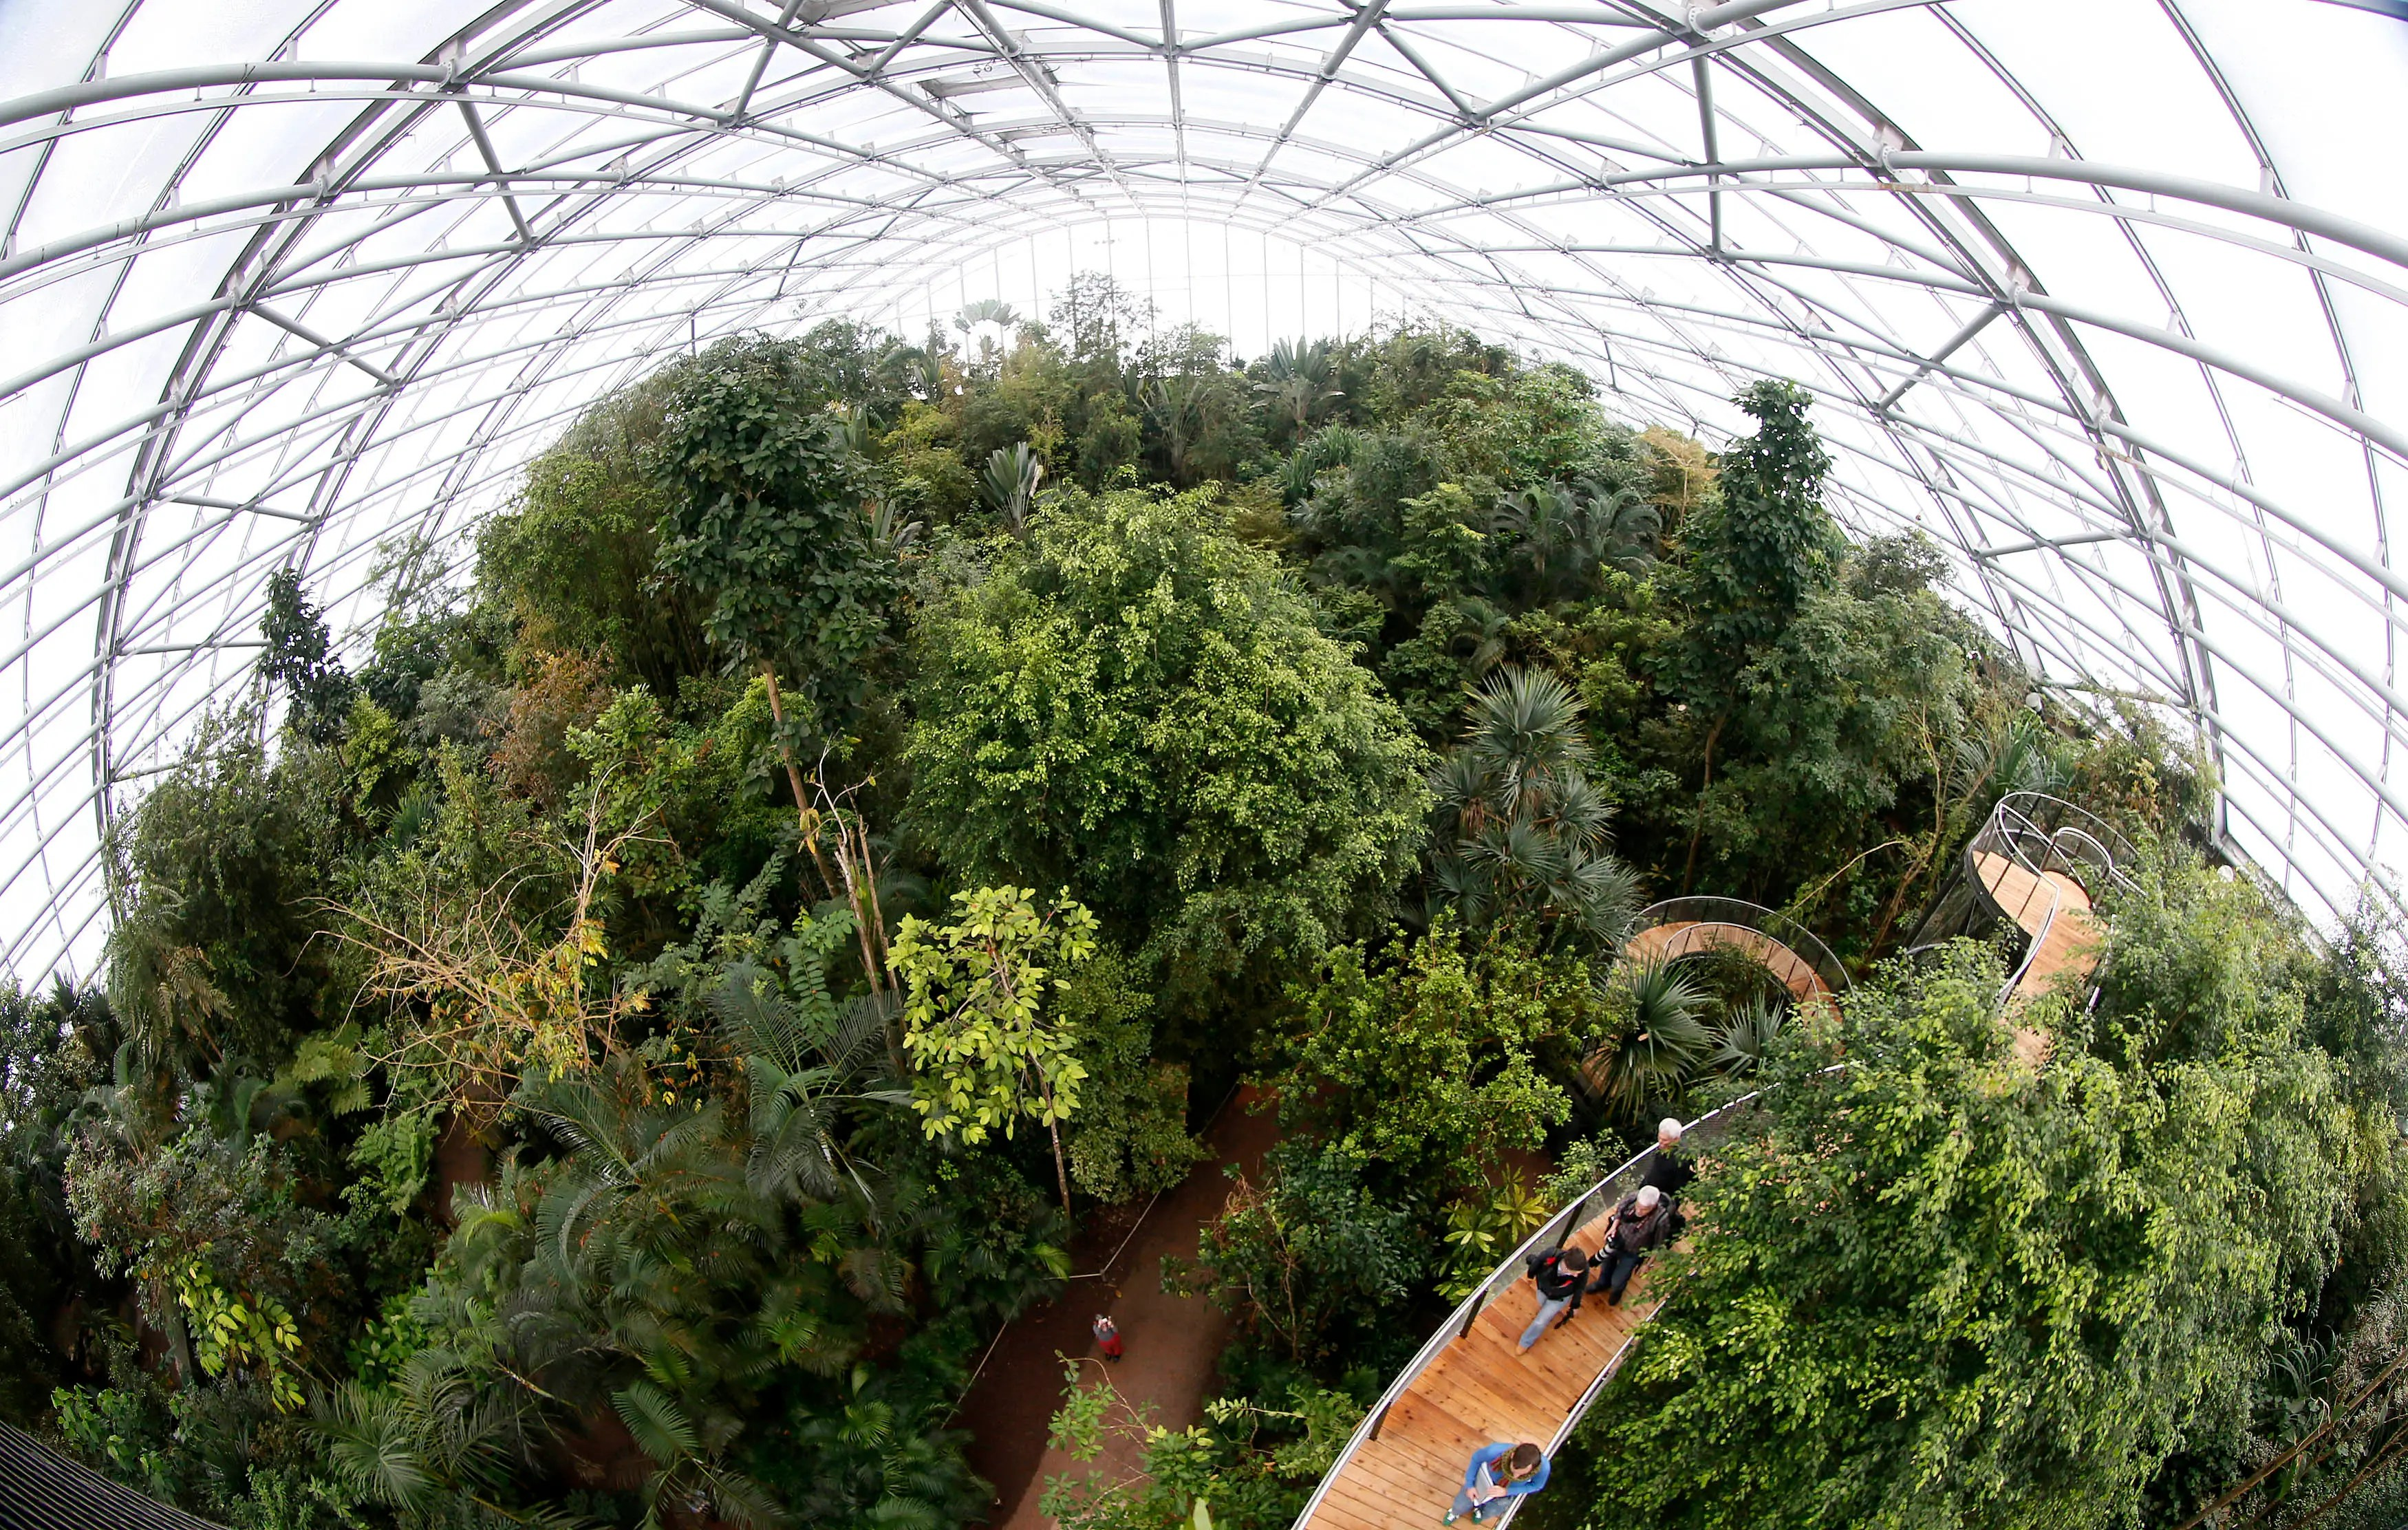 Visitors climb up stairs on the newly opened treetop path in the Masoala Rainforest hall at the zoo in Zurich.